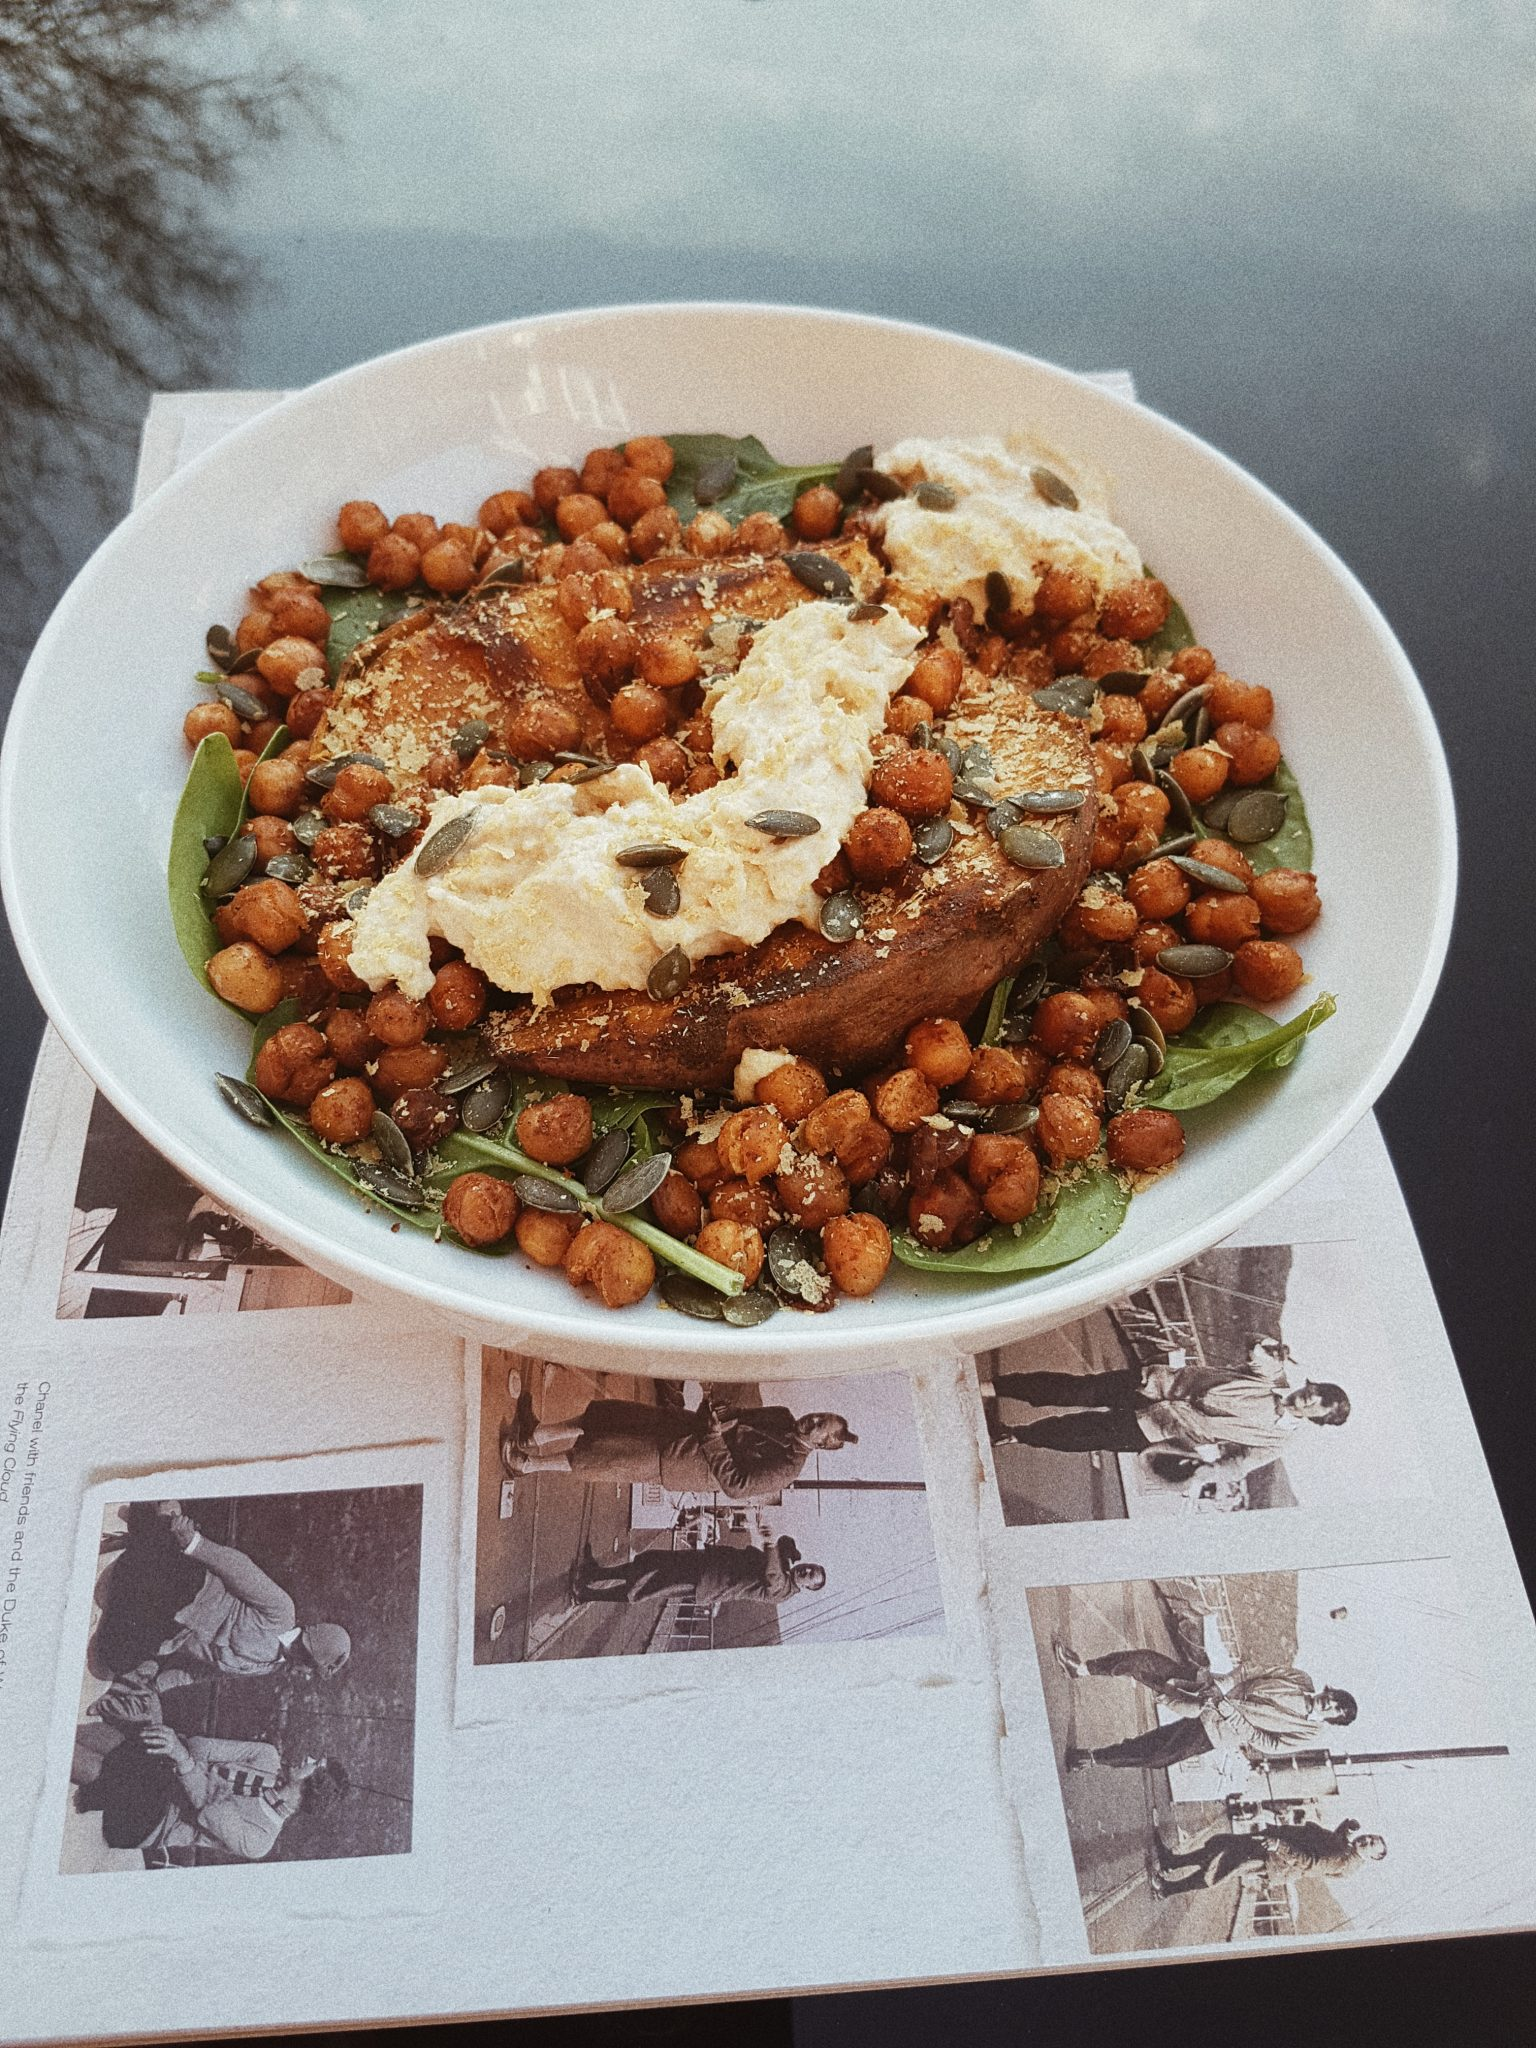 Good Dieting Style - Healthy food - The Style of Laura Jane